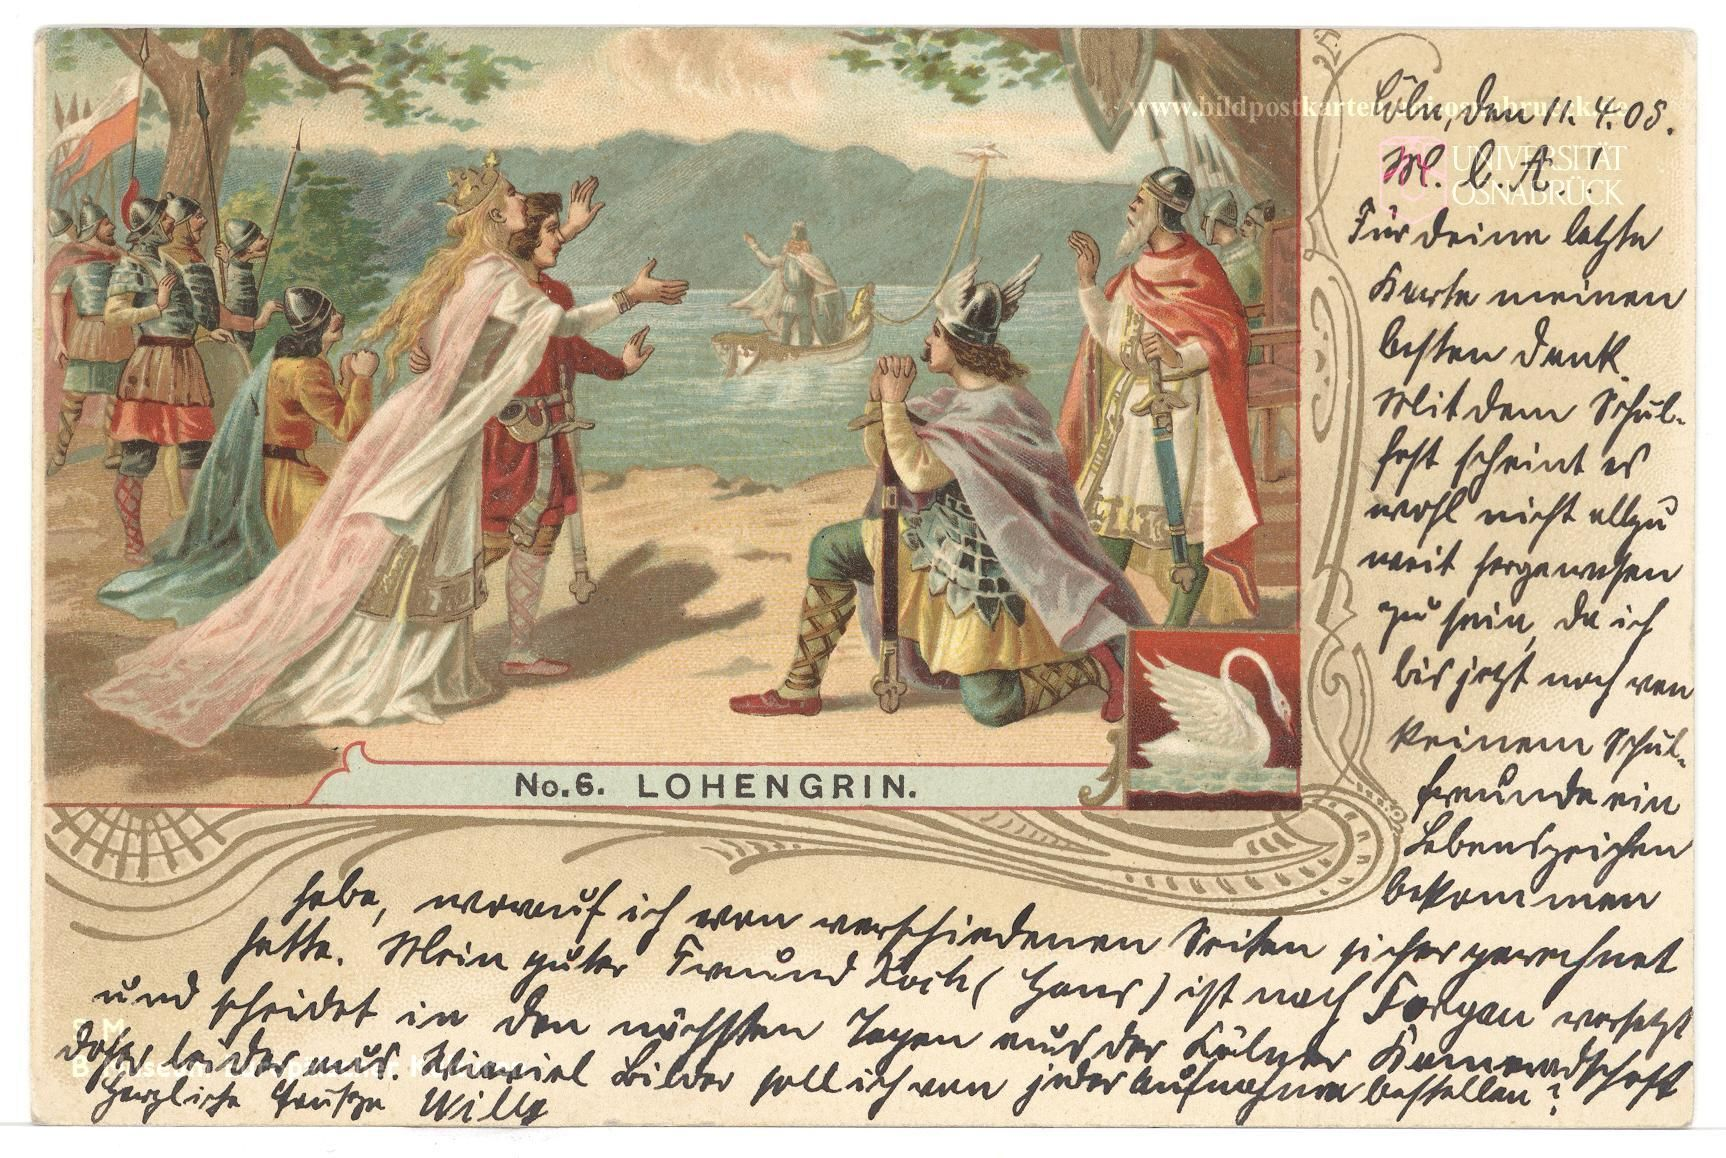 Lohengrin http://www.podcast-university.com/displayimage.php?pid=6221